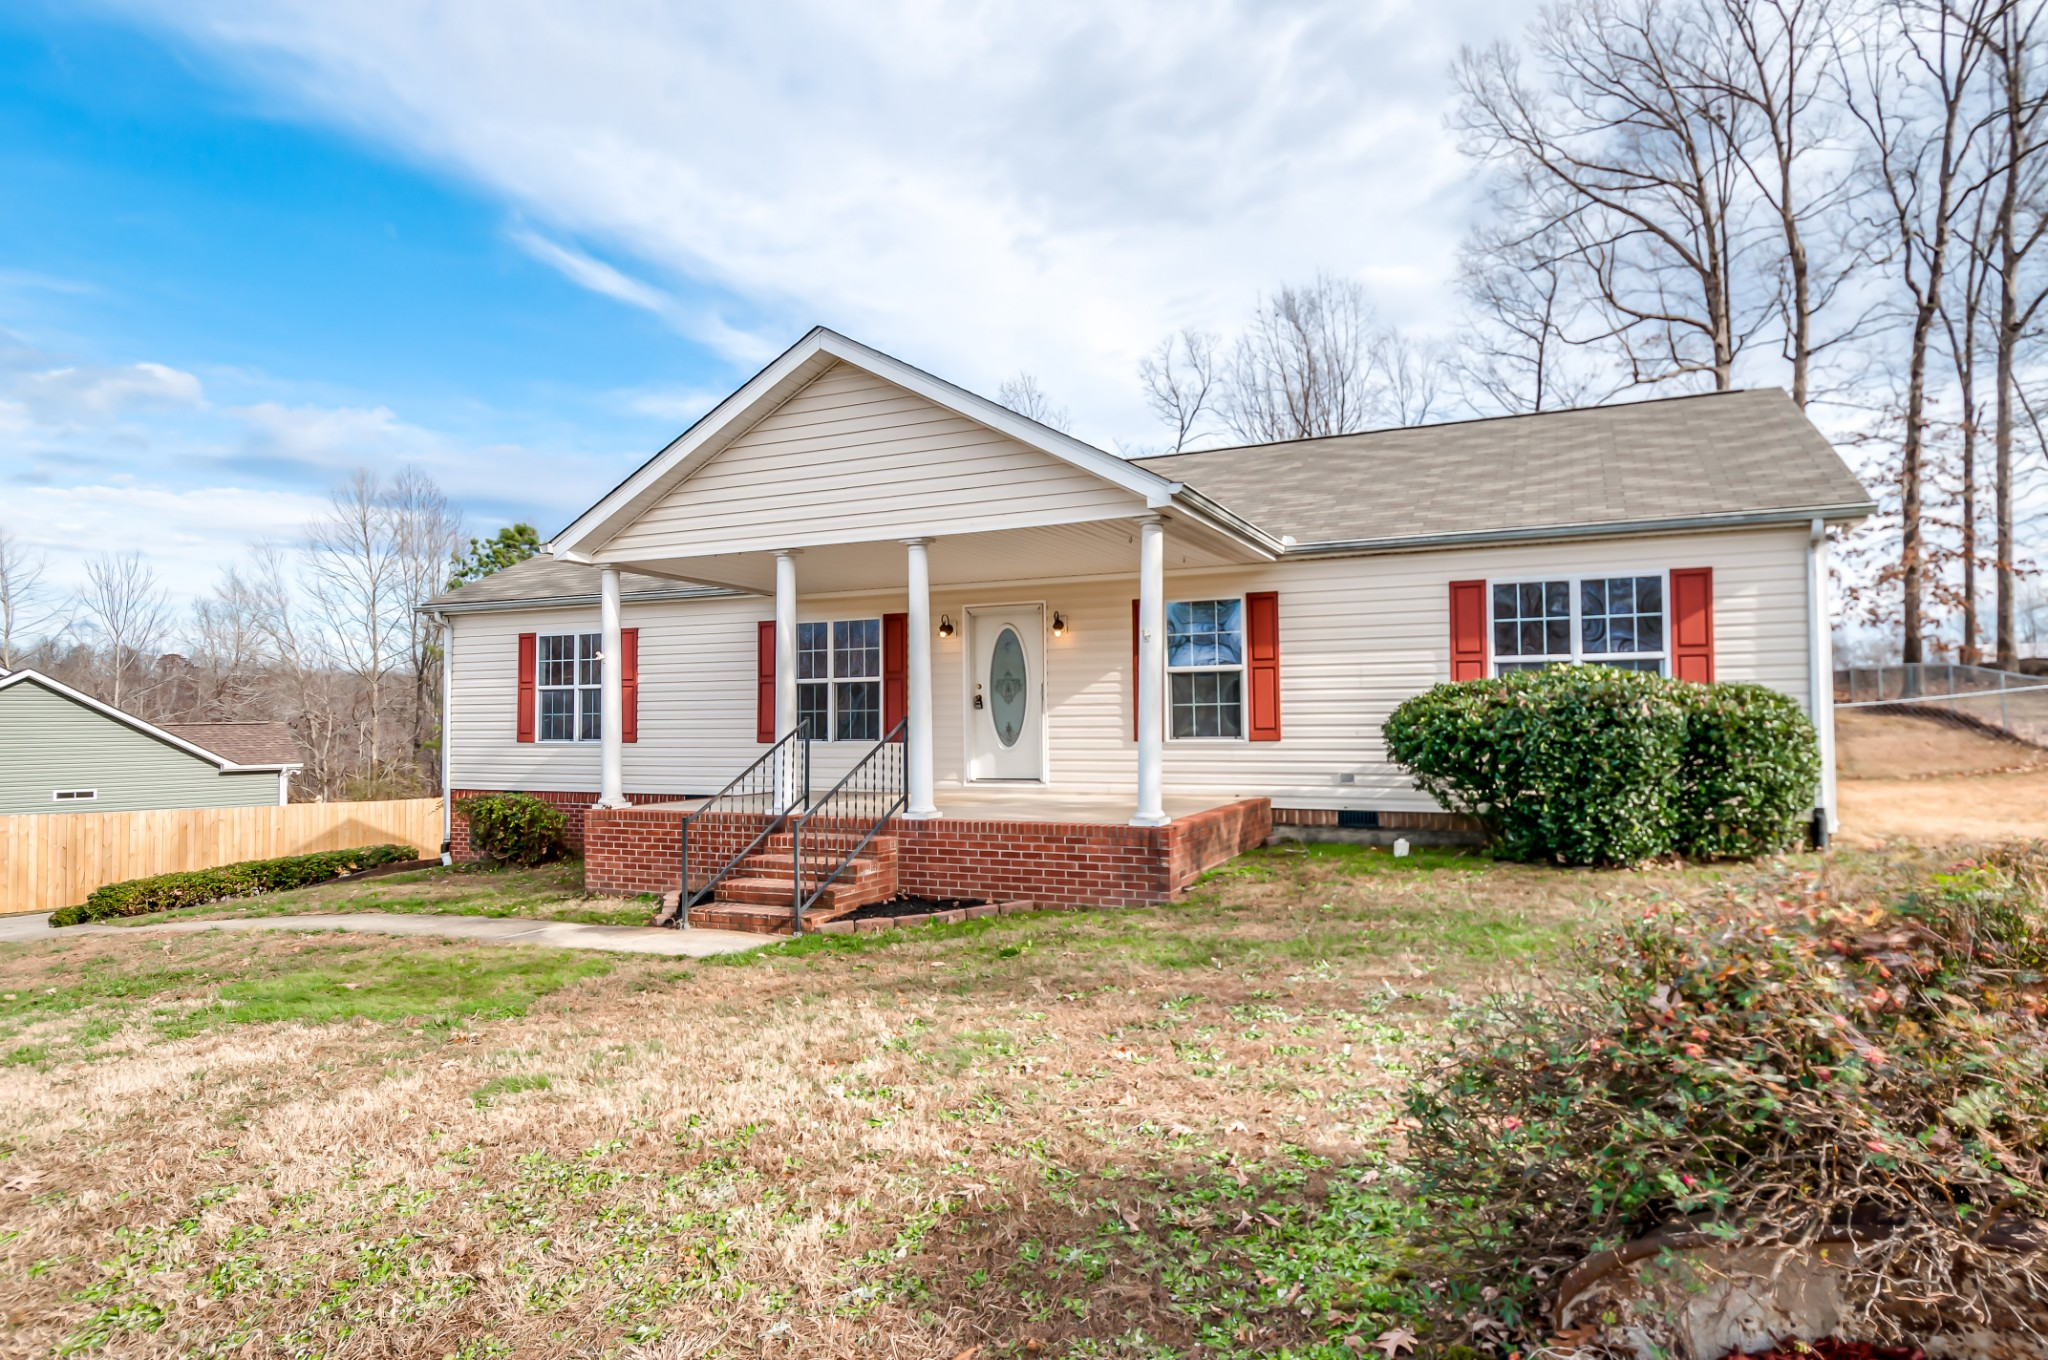 Great home in a wonderful highly desired neighborhood close to downtown Dickson.  This home offers f